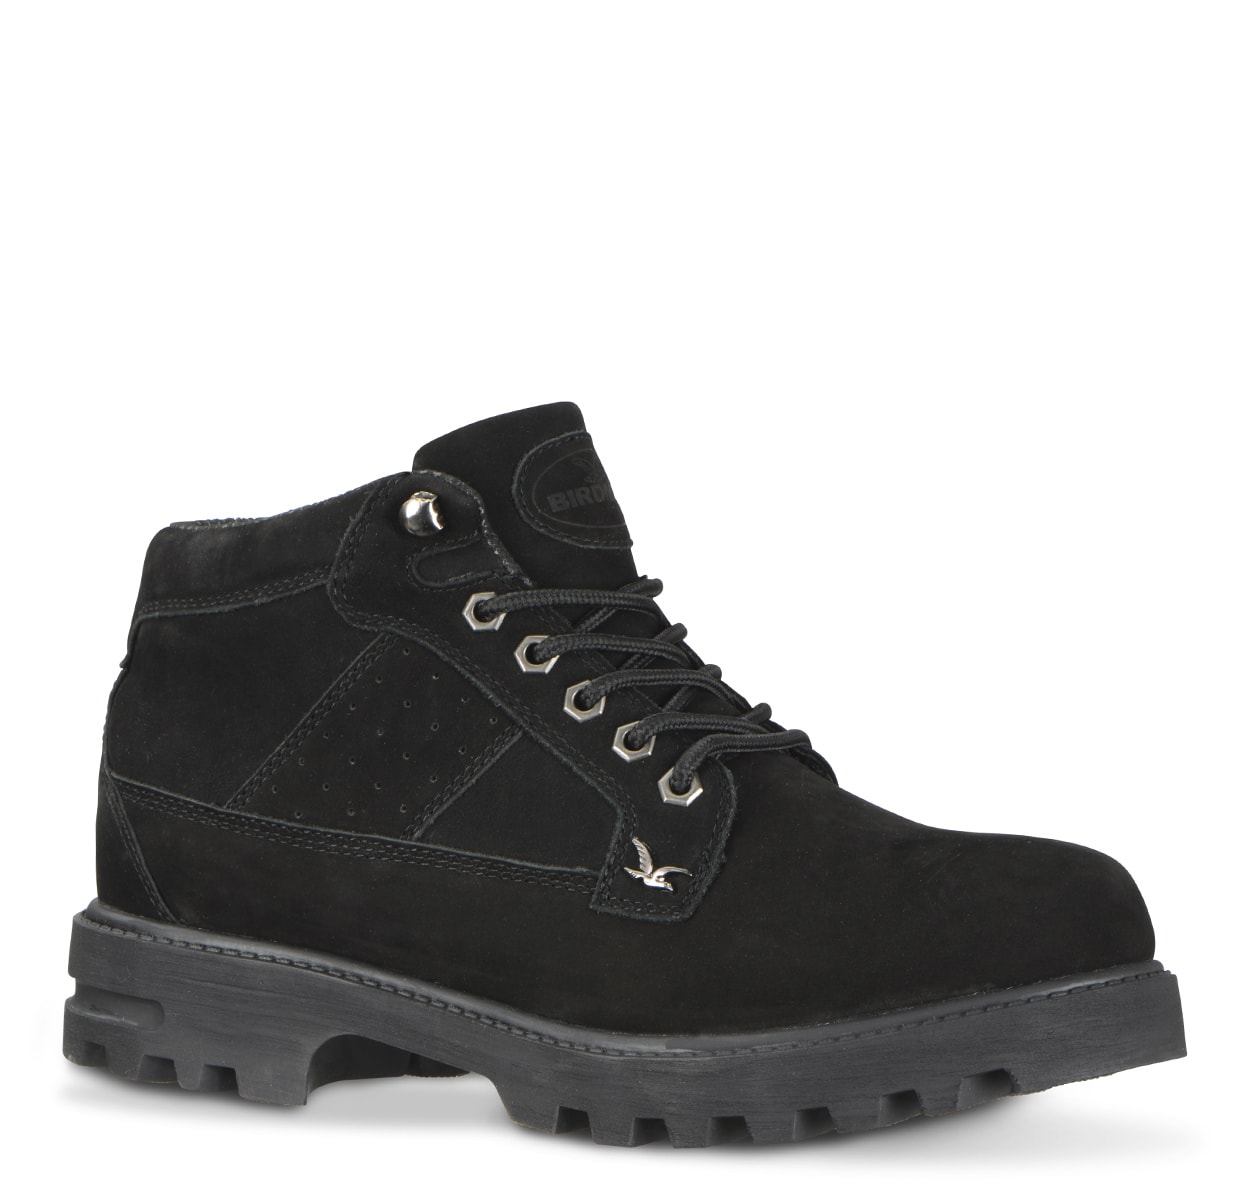 bfd1a96c9cddc Mens Blue Lugz Brigade Fleece Water Resistant Boots